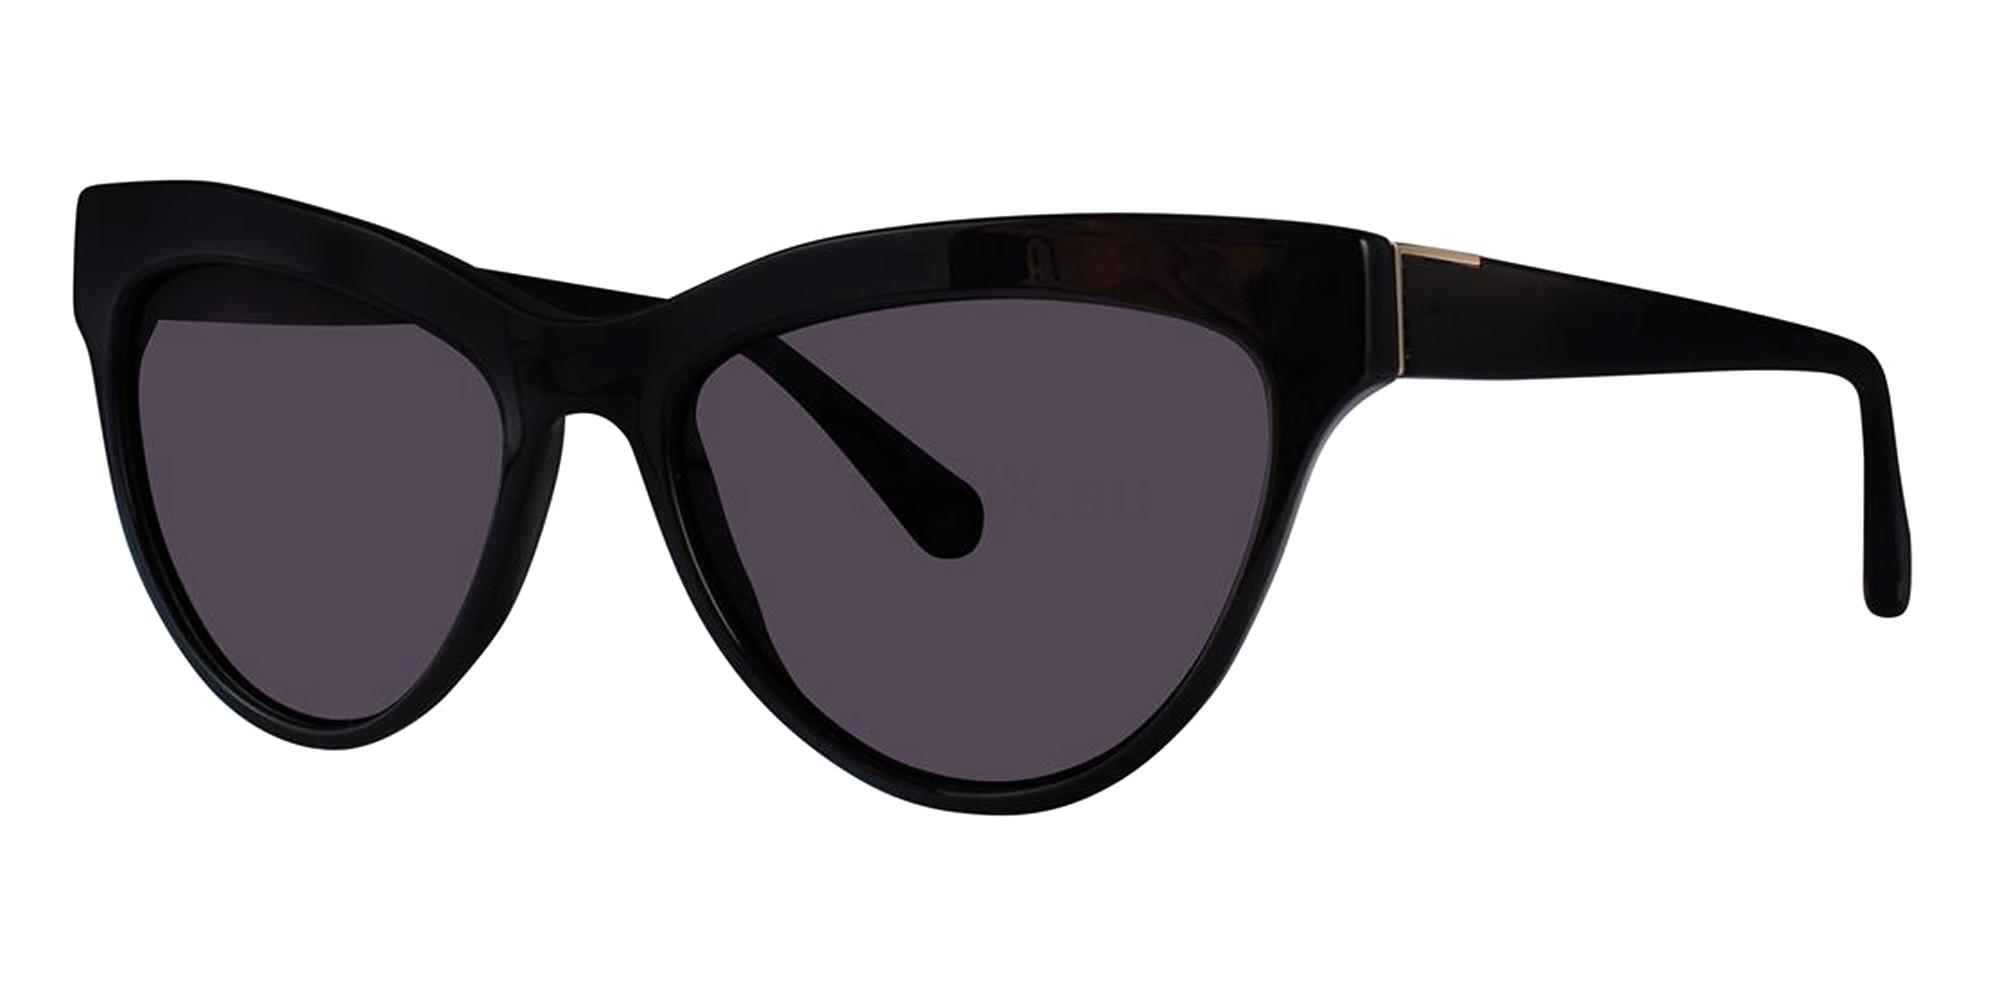 Black FARROW Sunglasses, Zac Posen